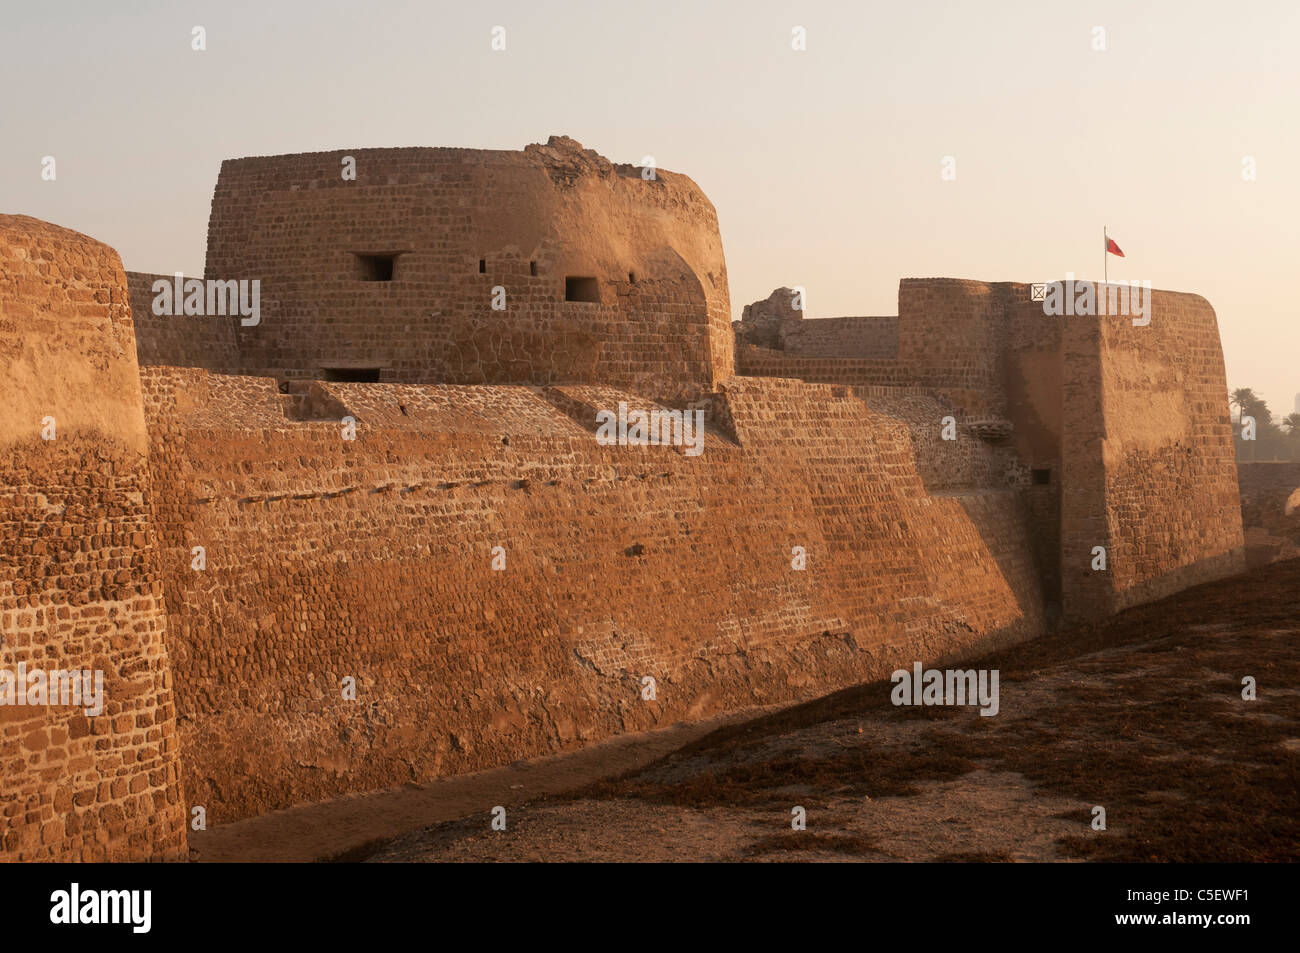 Elk204-1389 Bahrain, Bahrain Fort (Qala'at al Bahrain) 16th c, exterior walls and guard tower Stock Photo